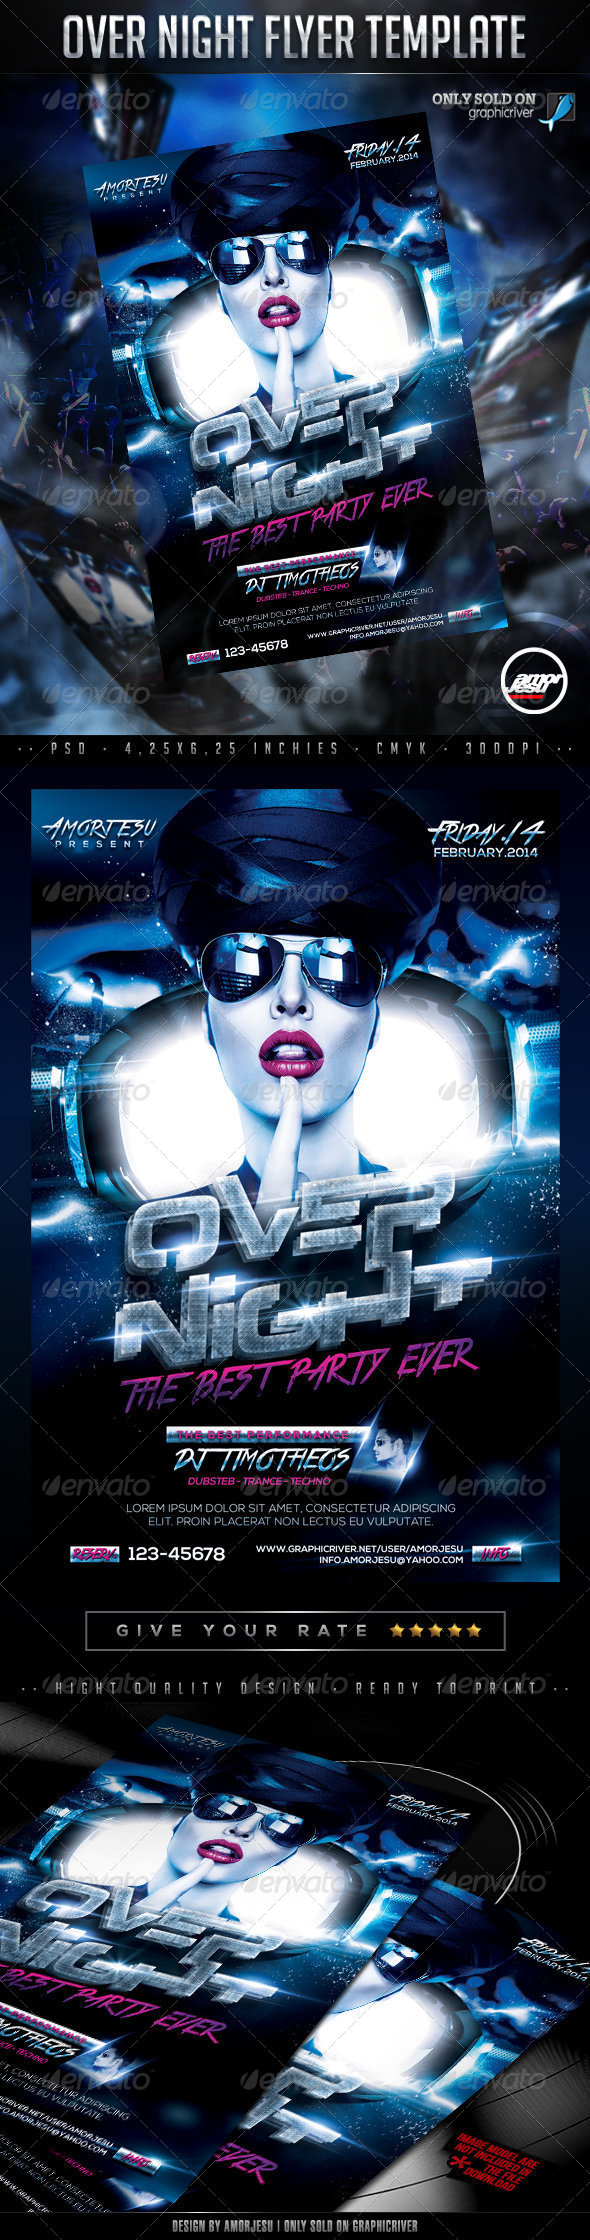 Over Night Flyer Template - Clubs & Parties Events